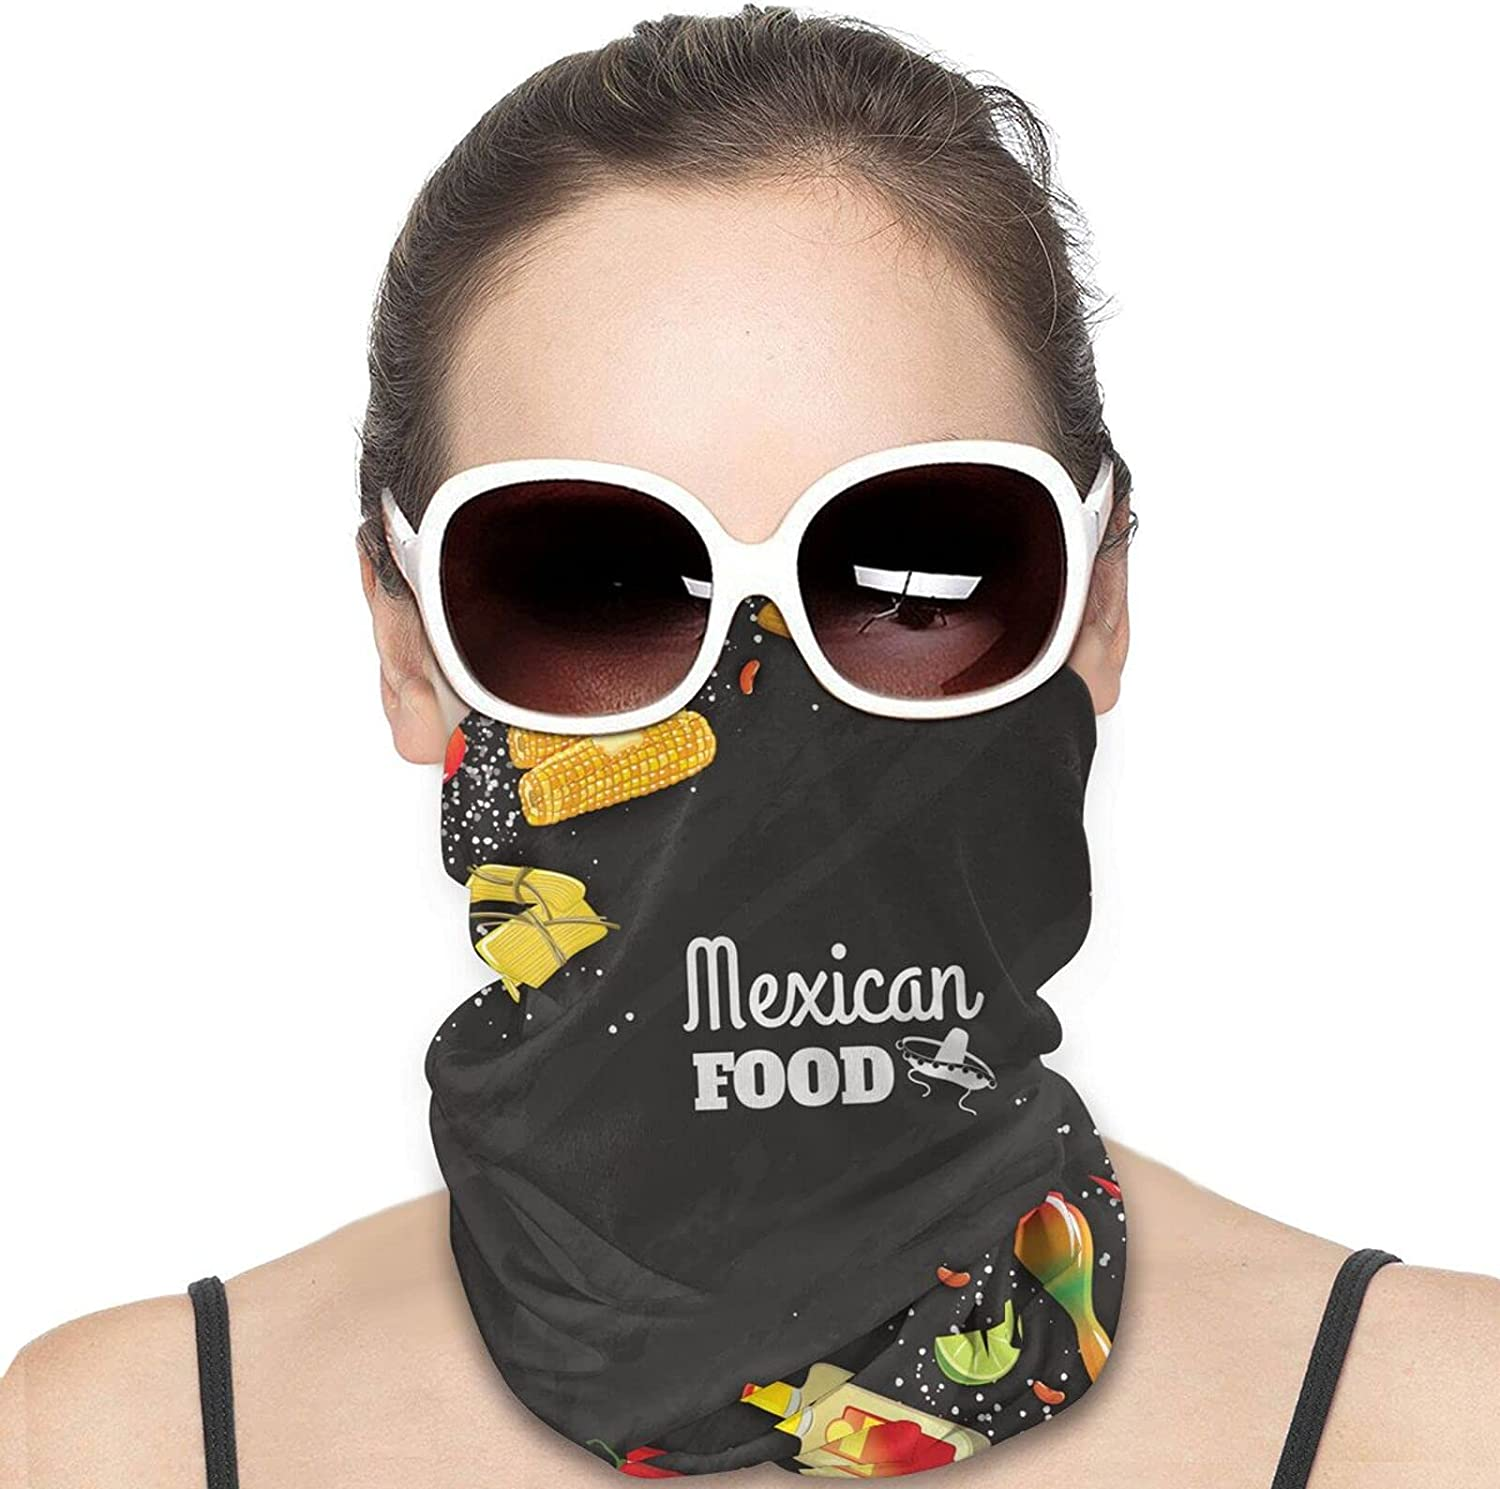 Mexican Food Round Neck Gaiter Bandnas Face Cover Uv Protection Prevent bask in Ice Scarf Headbands Perfect for Motorcycle Cycling Running Festival Raves Outdoors